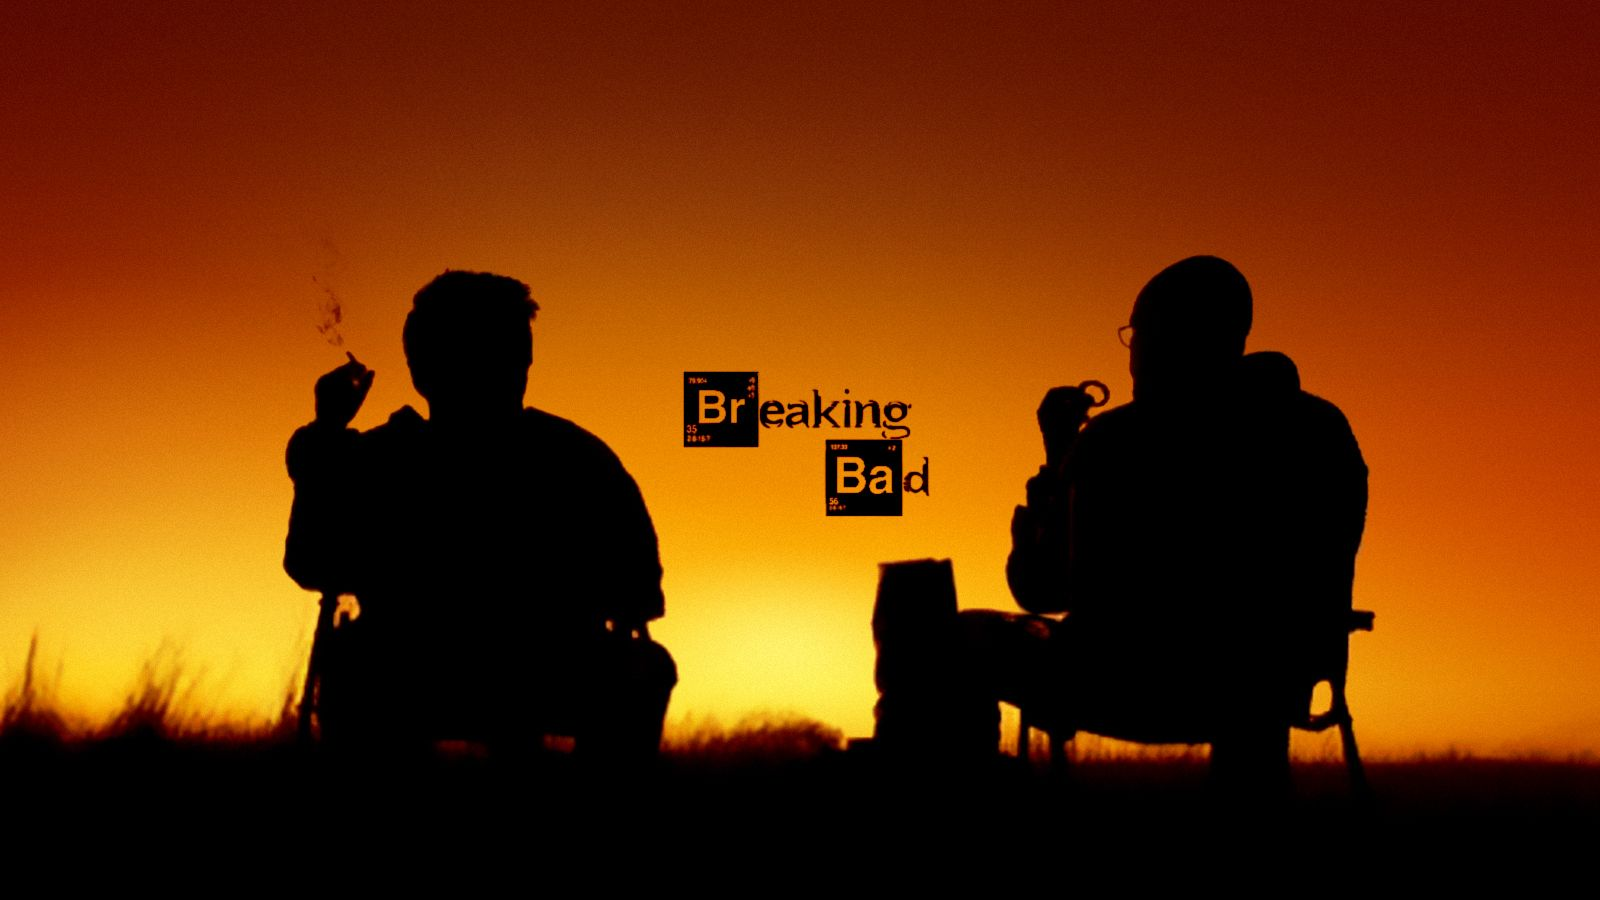 Breaking Bad Wallpapers 1080p ~ Sdeerwallpaper | Breaking bad in 2019 | Bad picture, Breaking ...